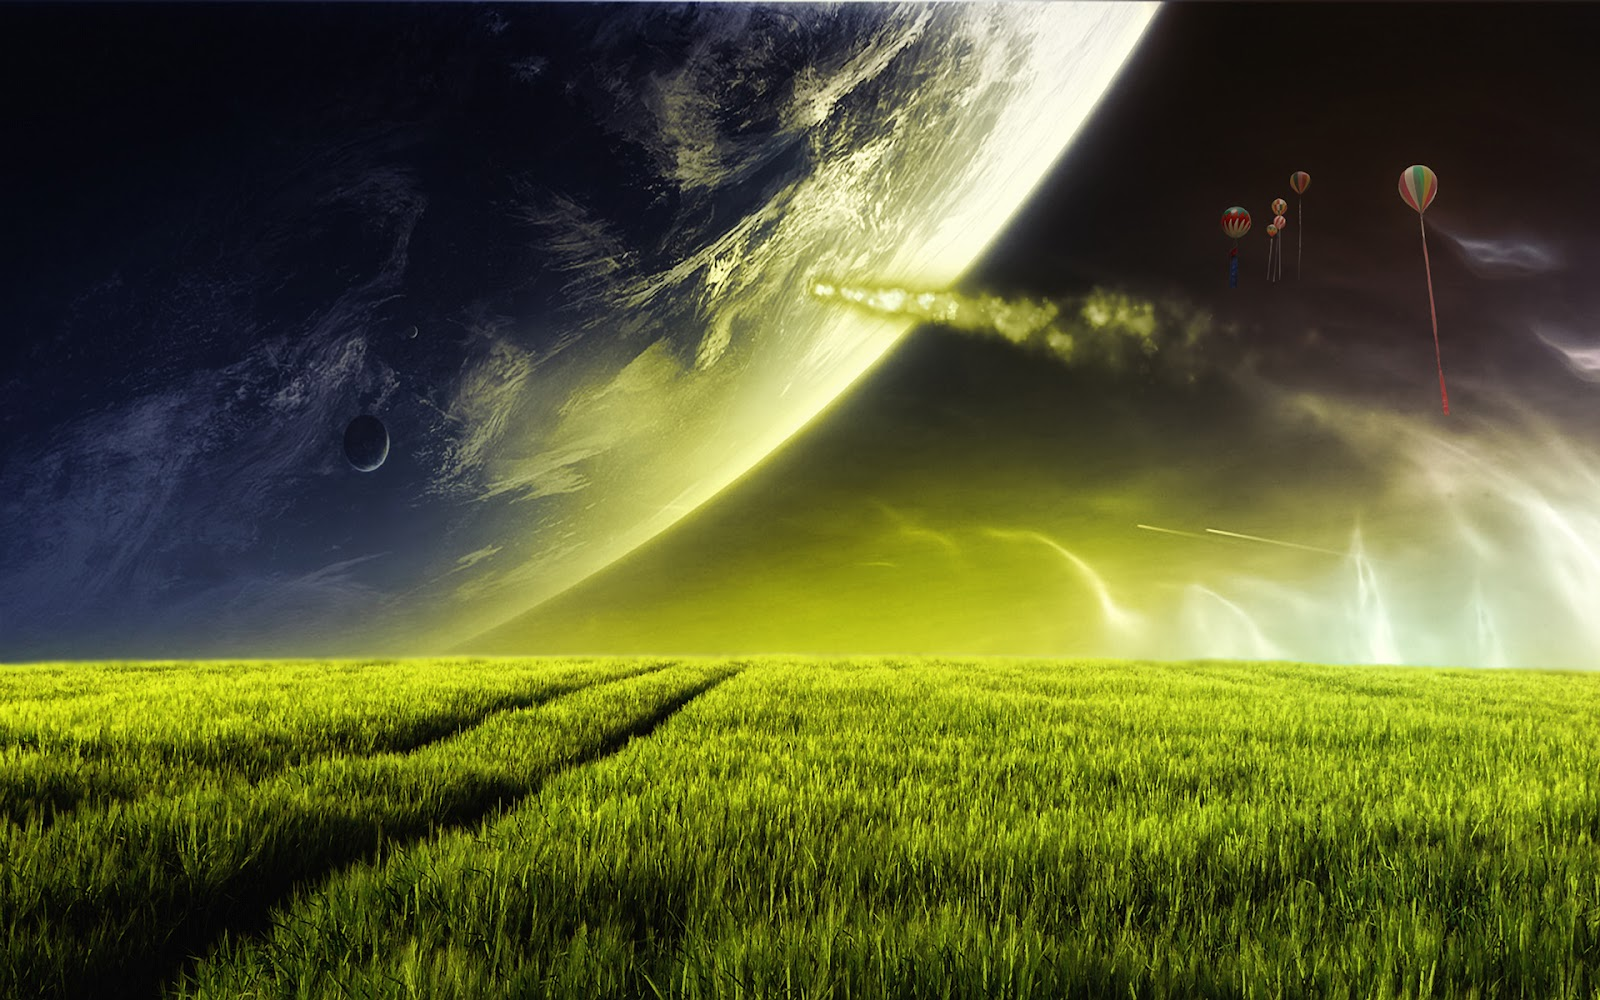 3d planets wallpaper hd - photo #34